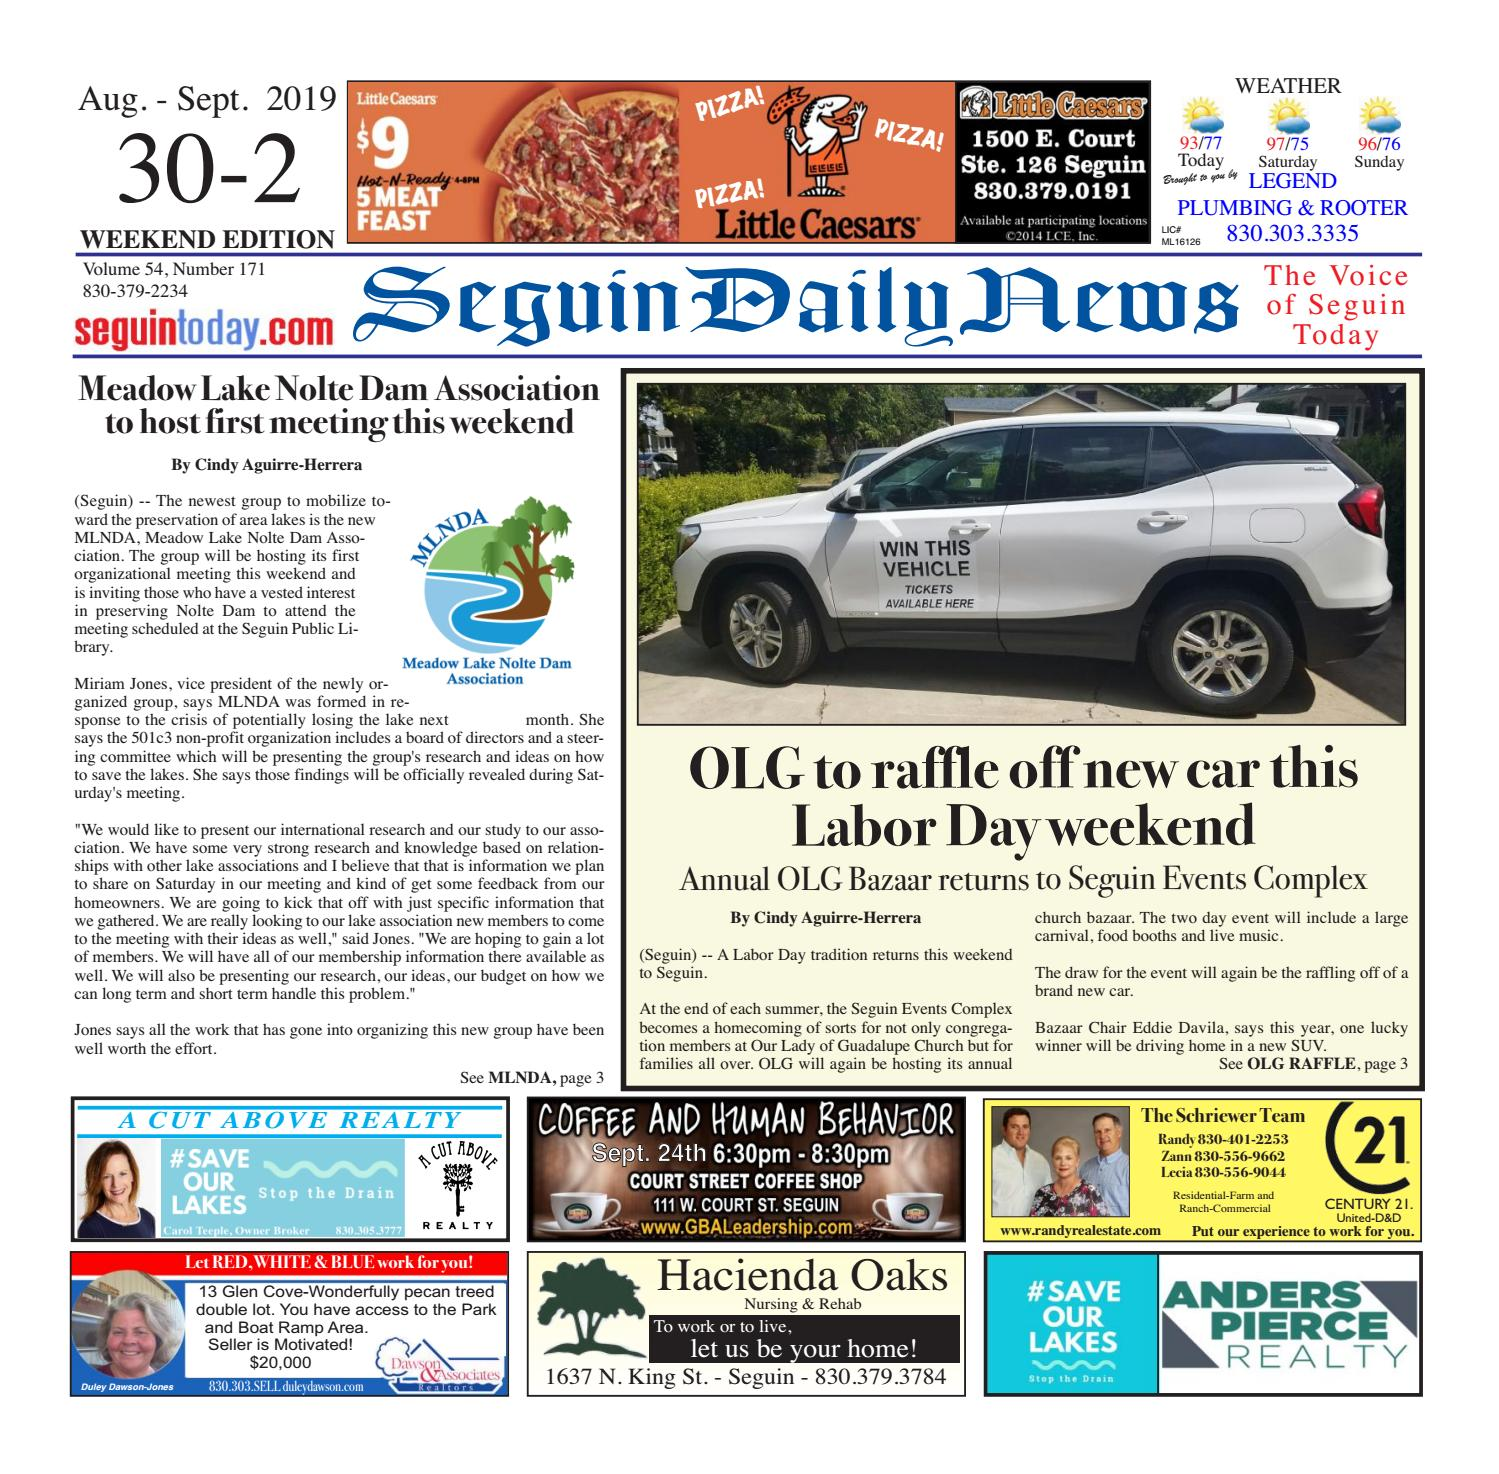 SDN, August 30-September 2, 2019 by Seguin Daily News - issuu